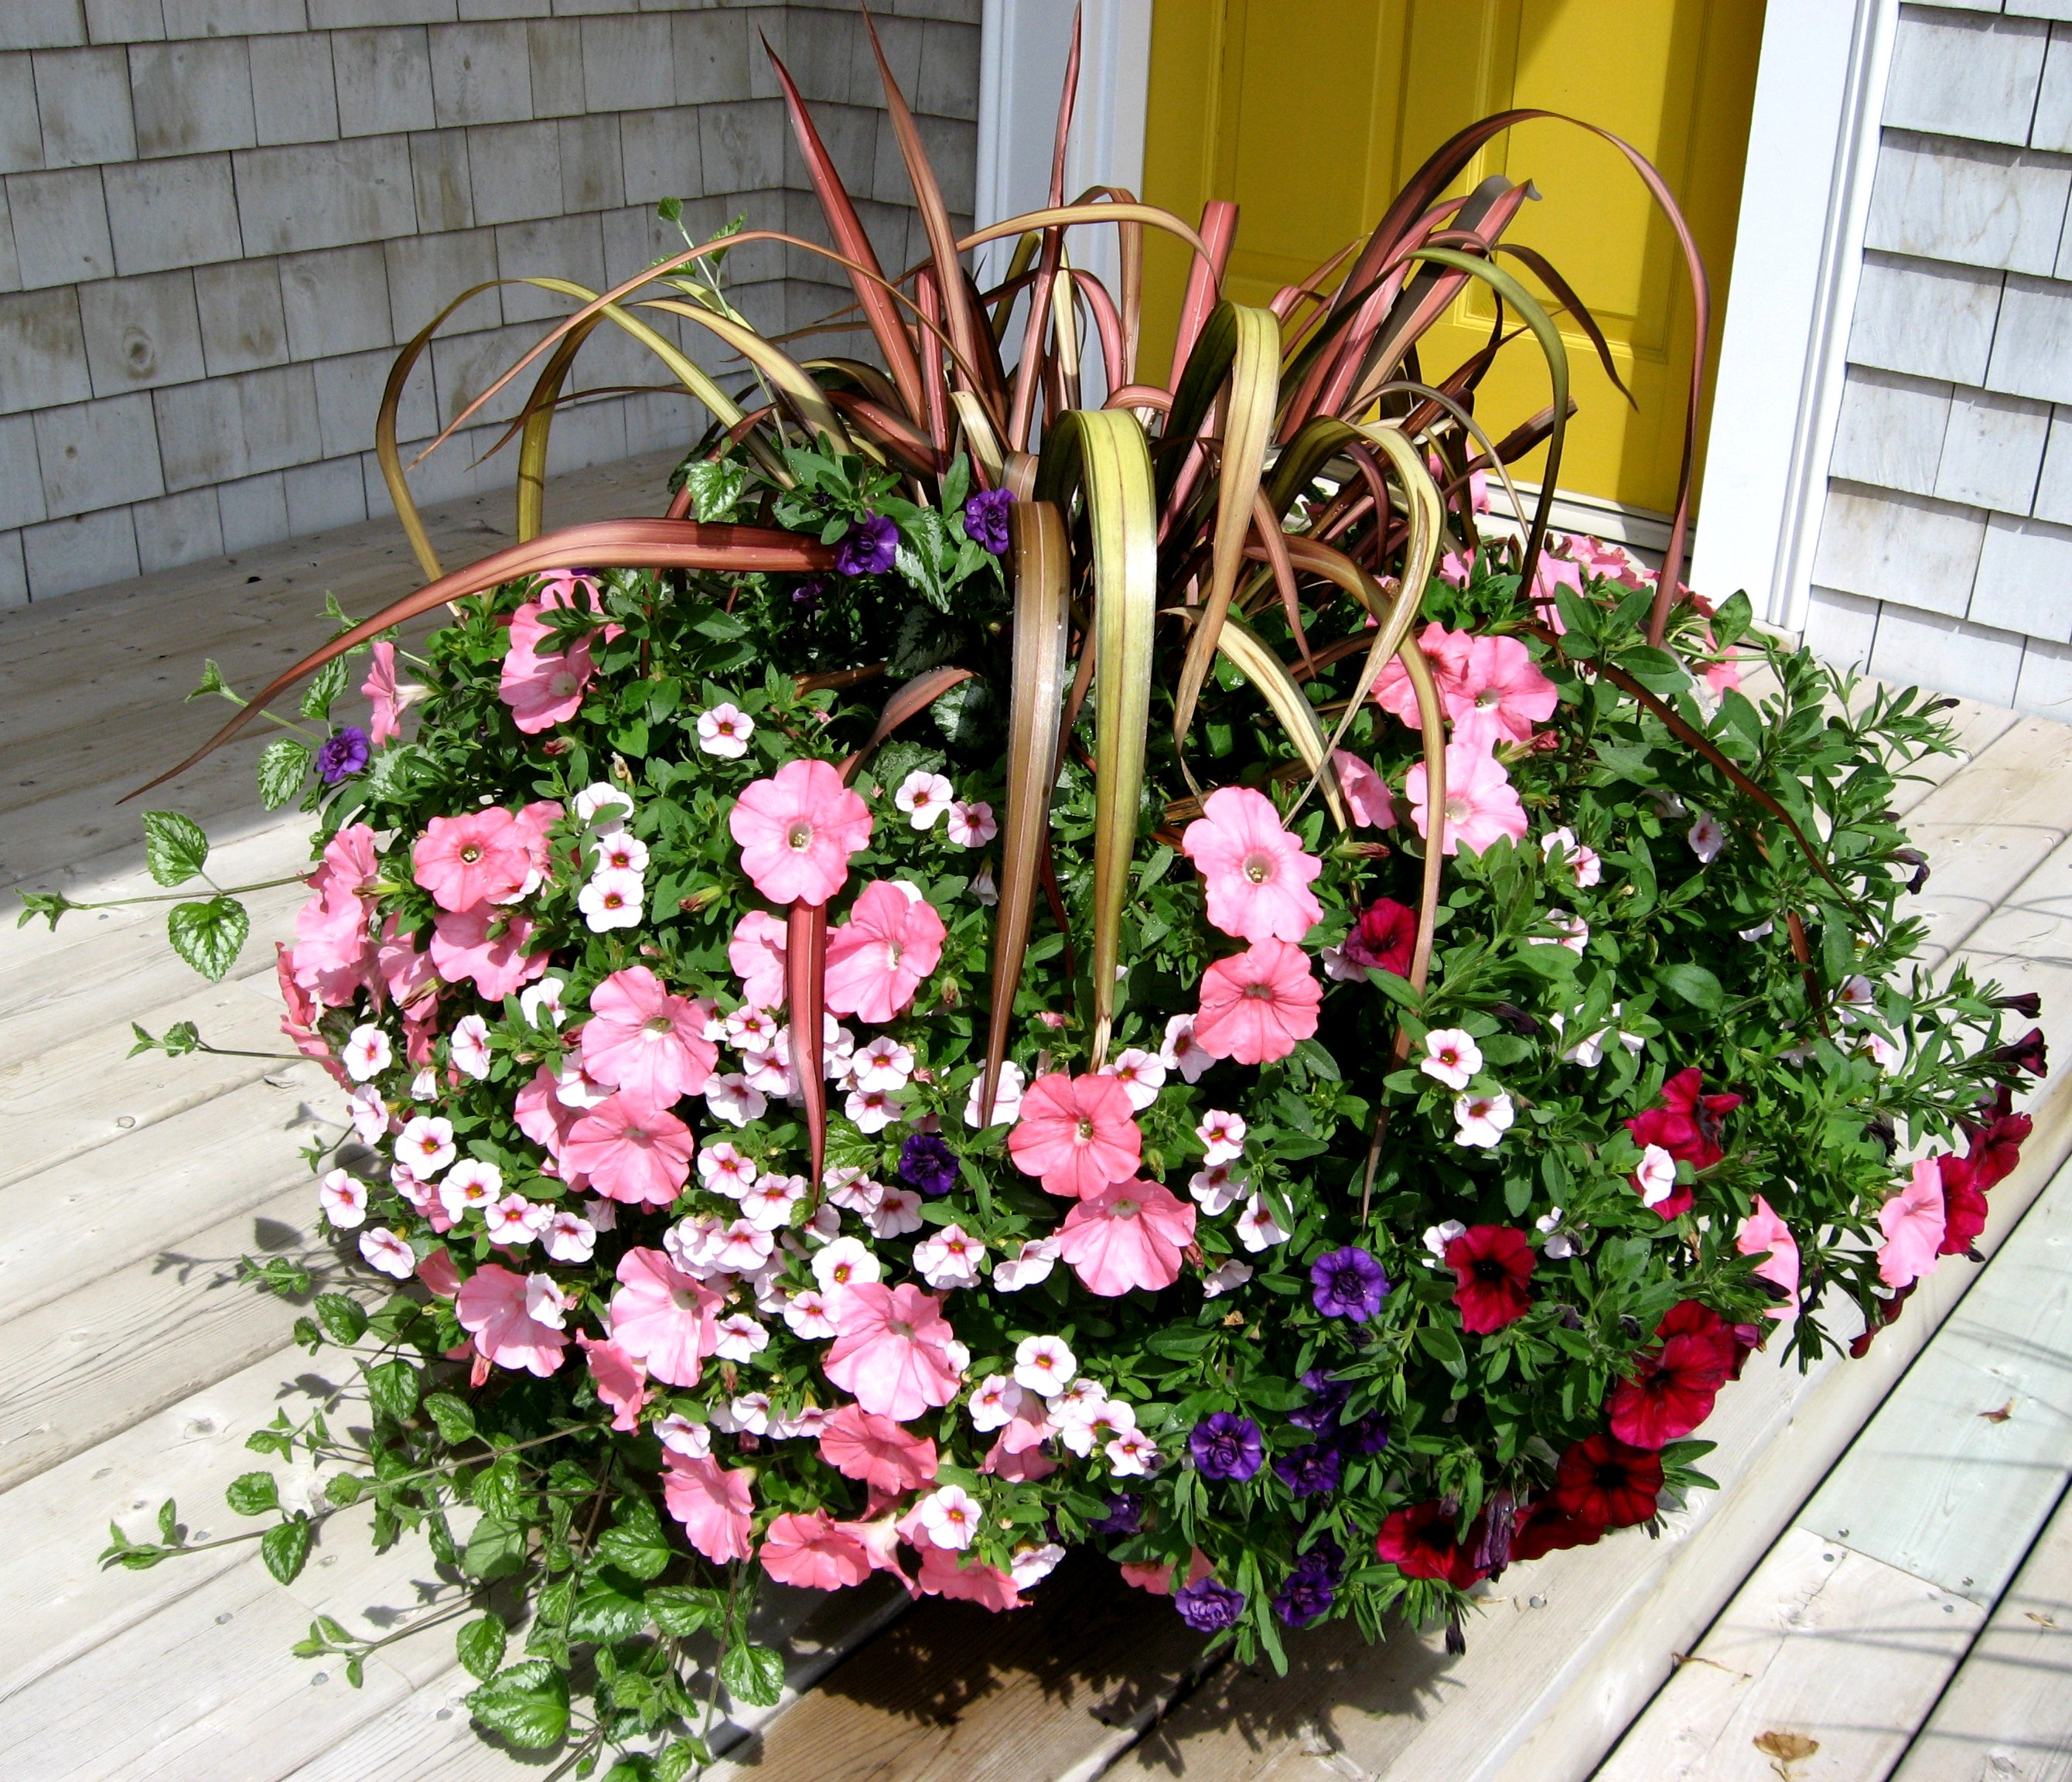 Choosing annuals for container gardens part 1 sunlight secret choosing annuals for container gardens part 1 sunlight secret gardens by crystal izmirmasajfo